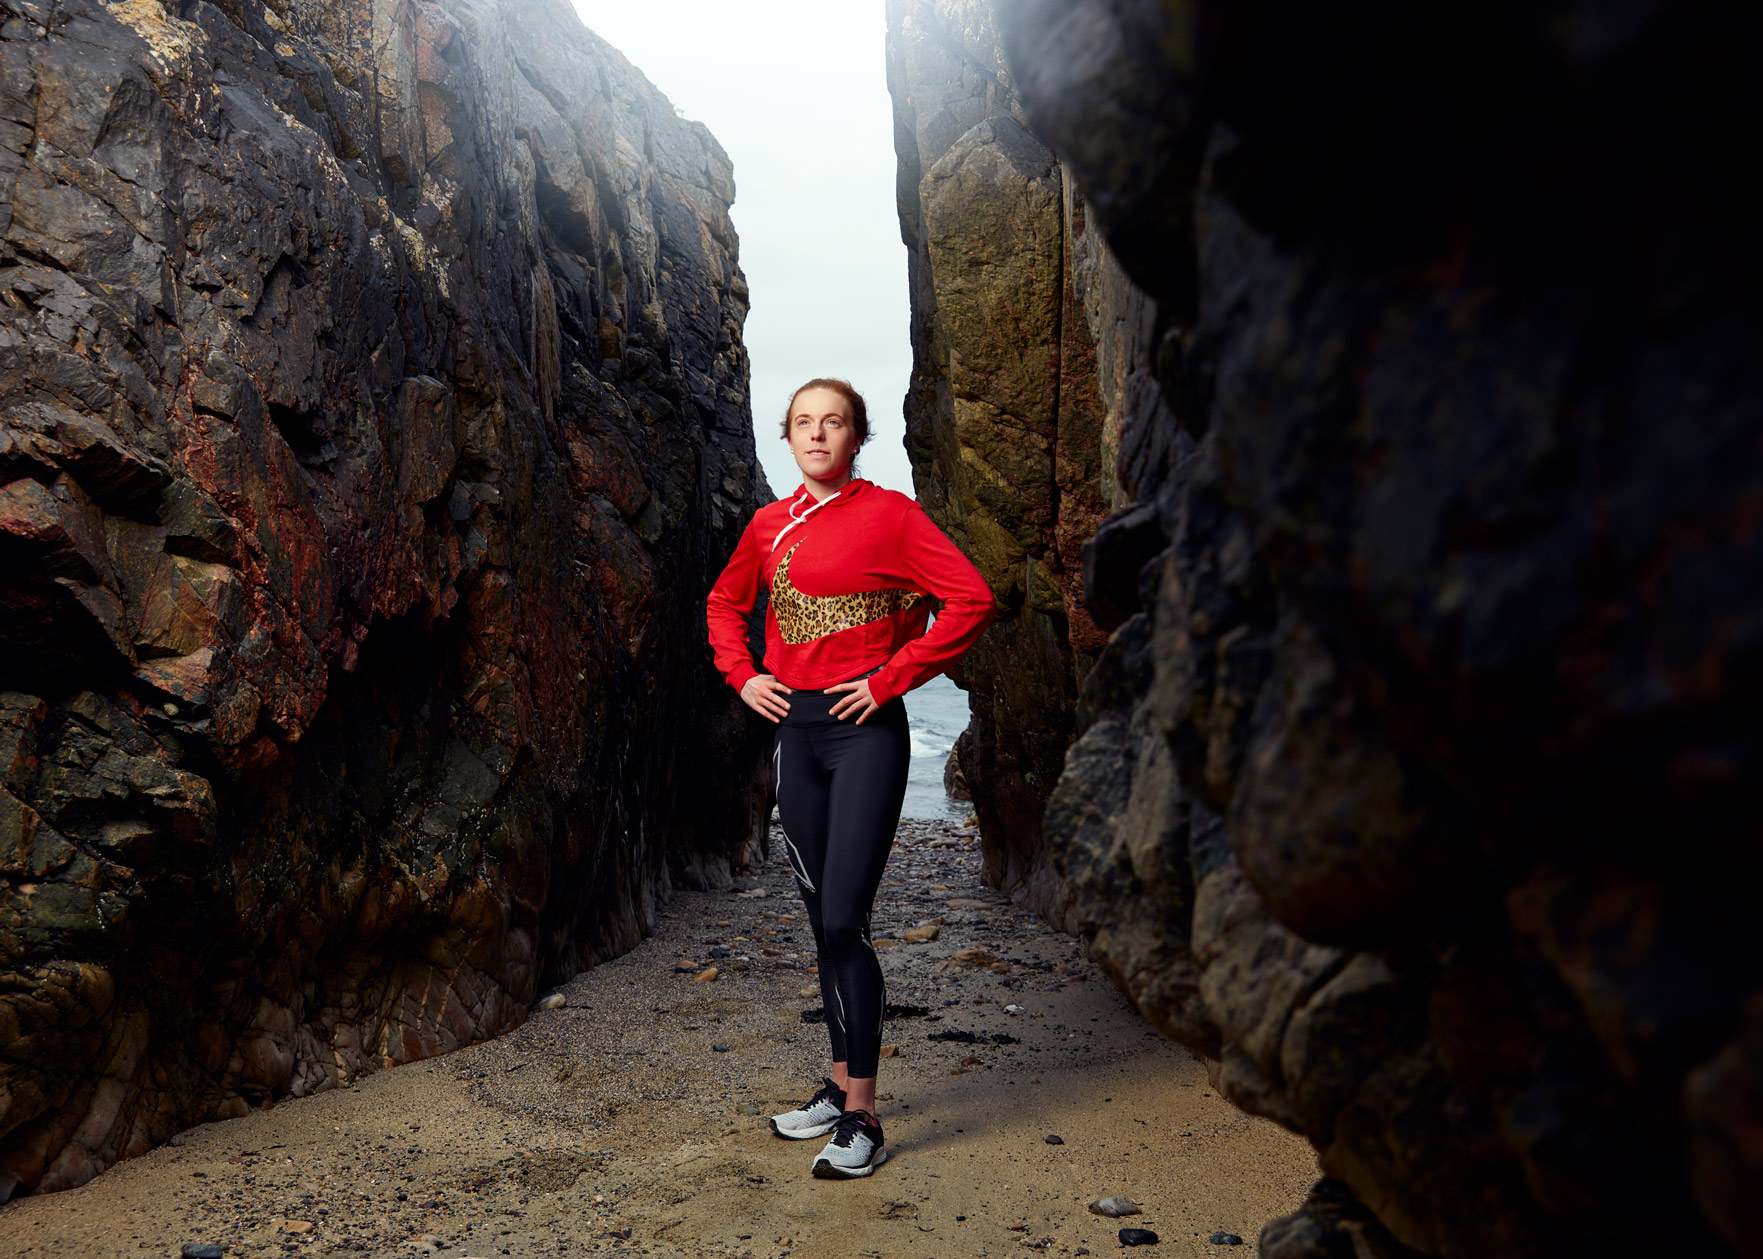 portrait photography: running is good for the soul